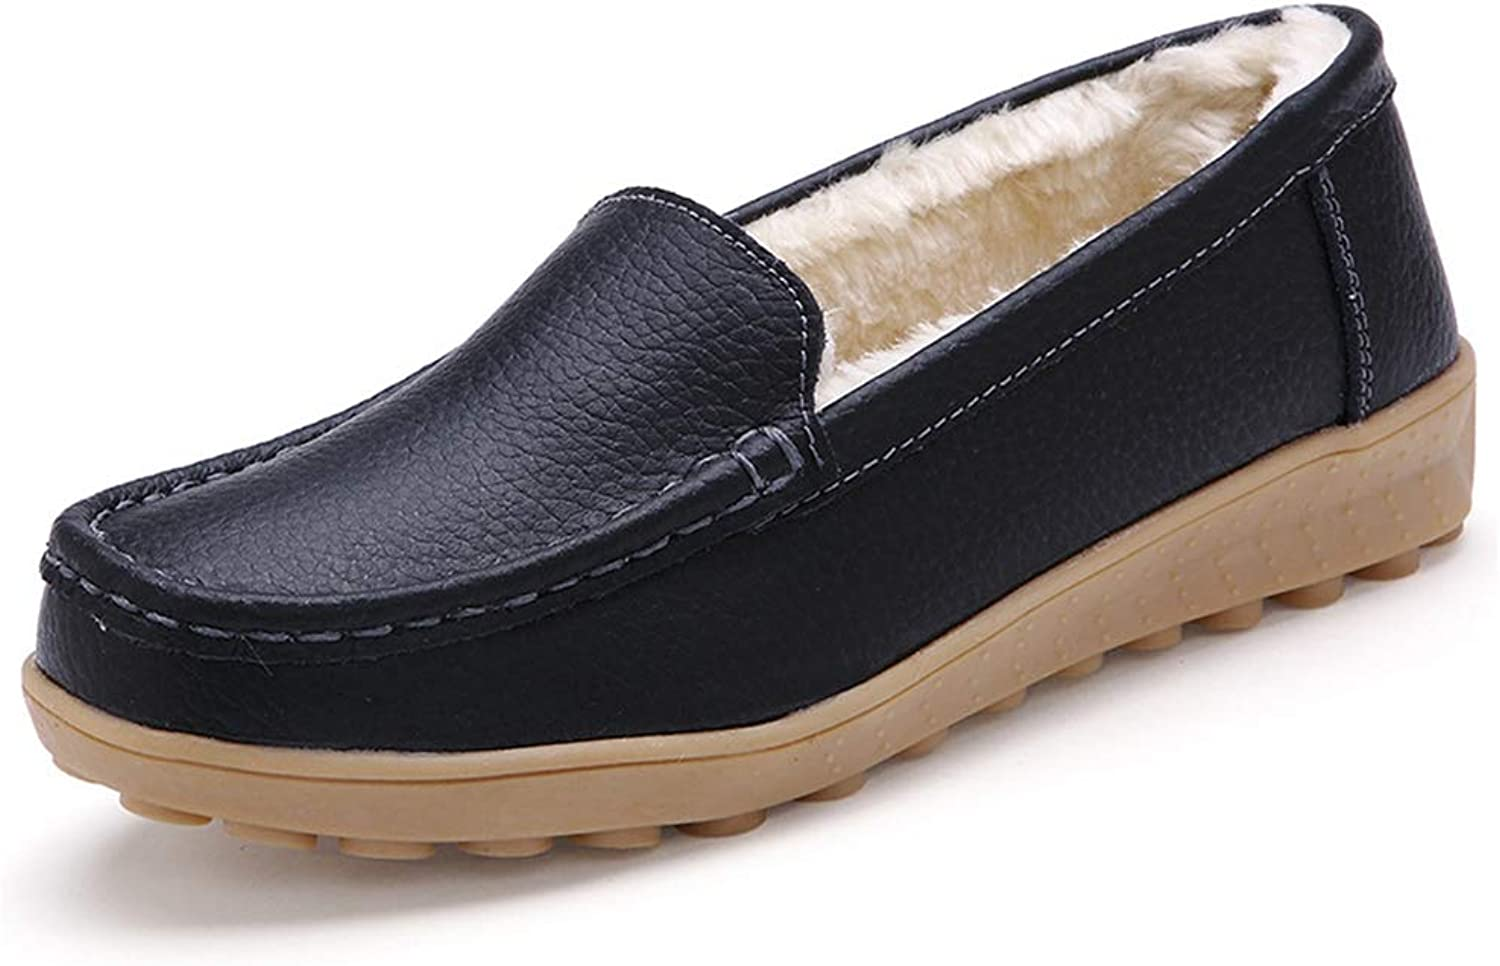 Kyle Walsh Pa Women's Winter Flat shoes Soft Warm Fur Non-Slip Comfortable Female Winter Pregnant Driving Flats